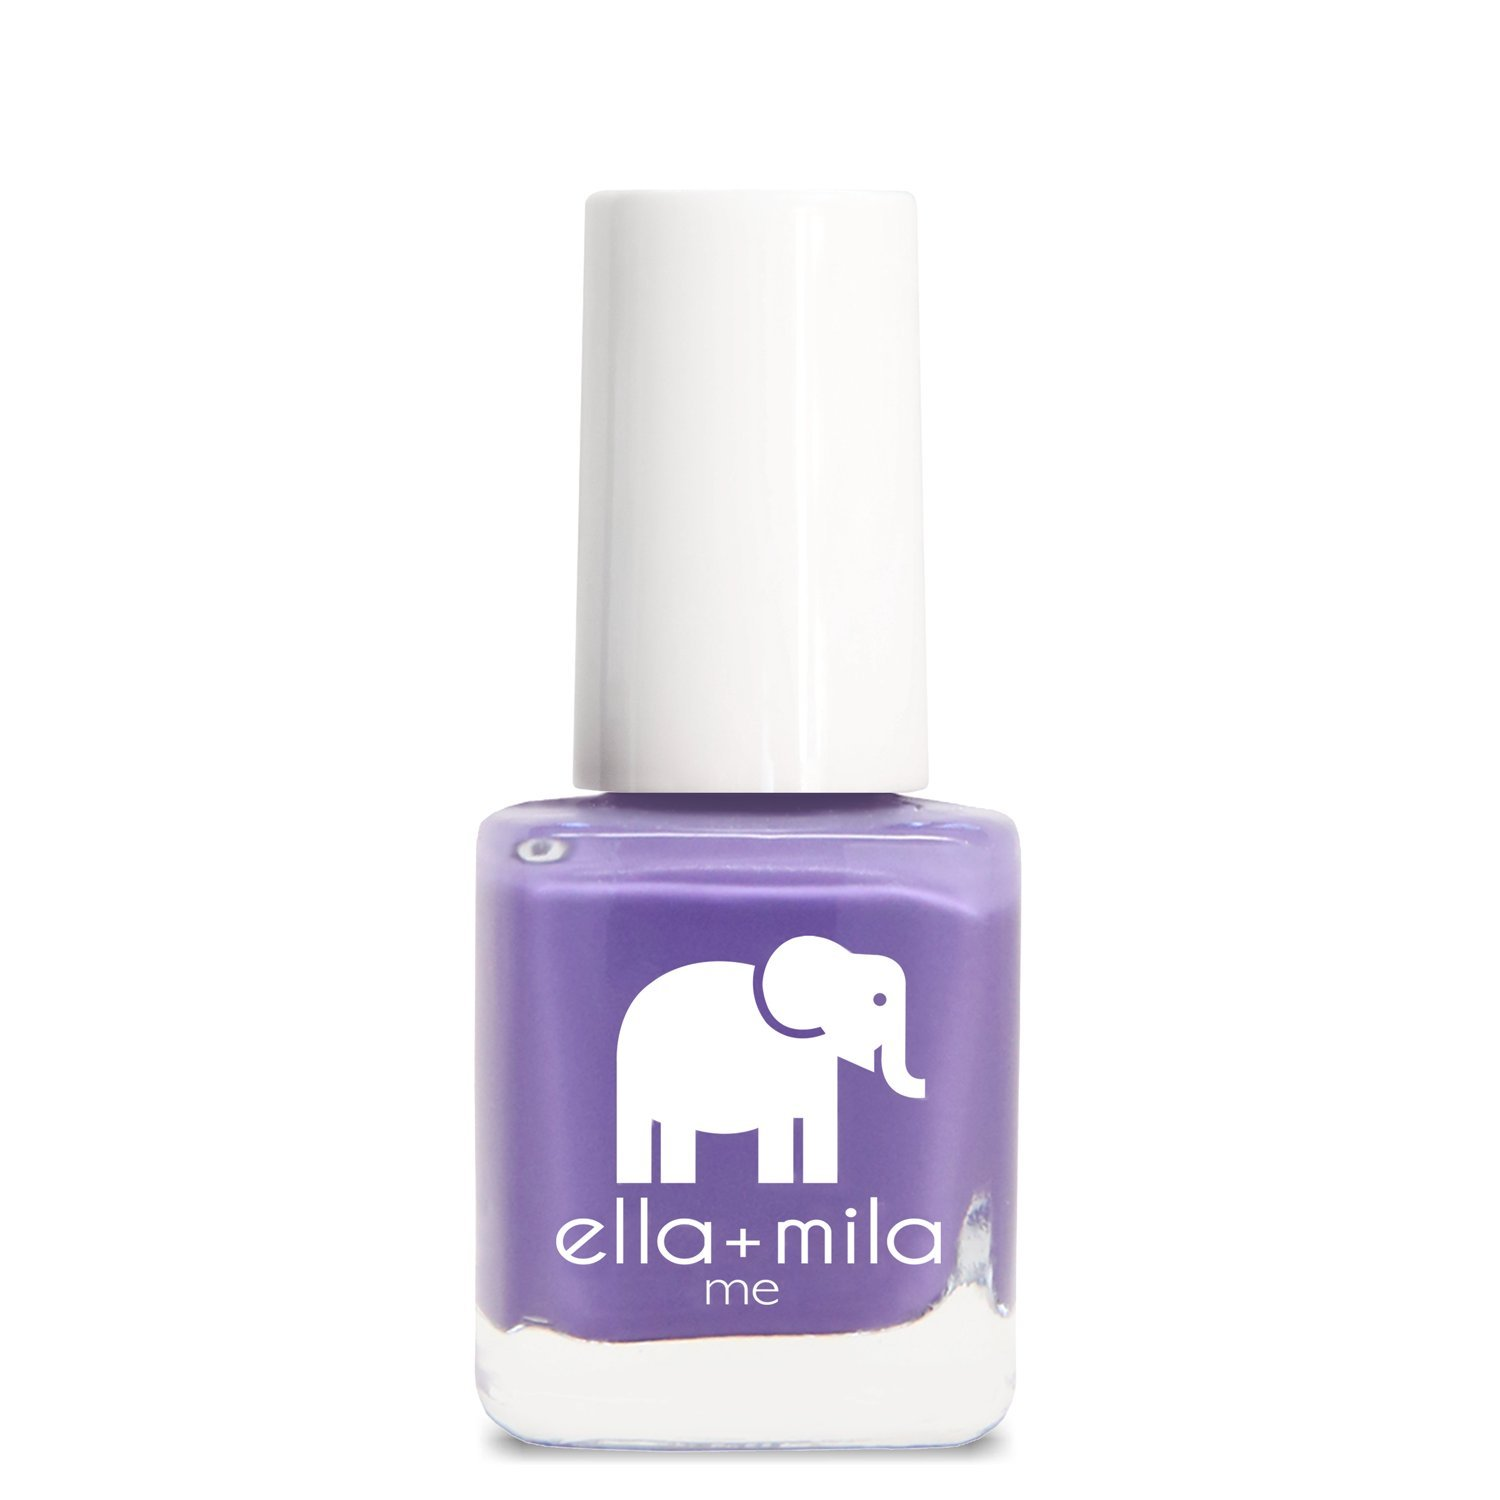 ella+mila Nail Polish, Me Collection - Mila's Fave